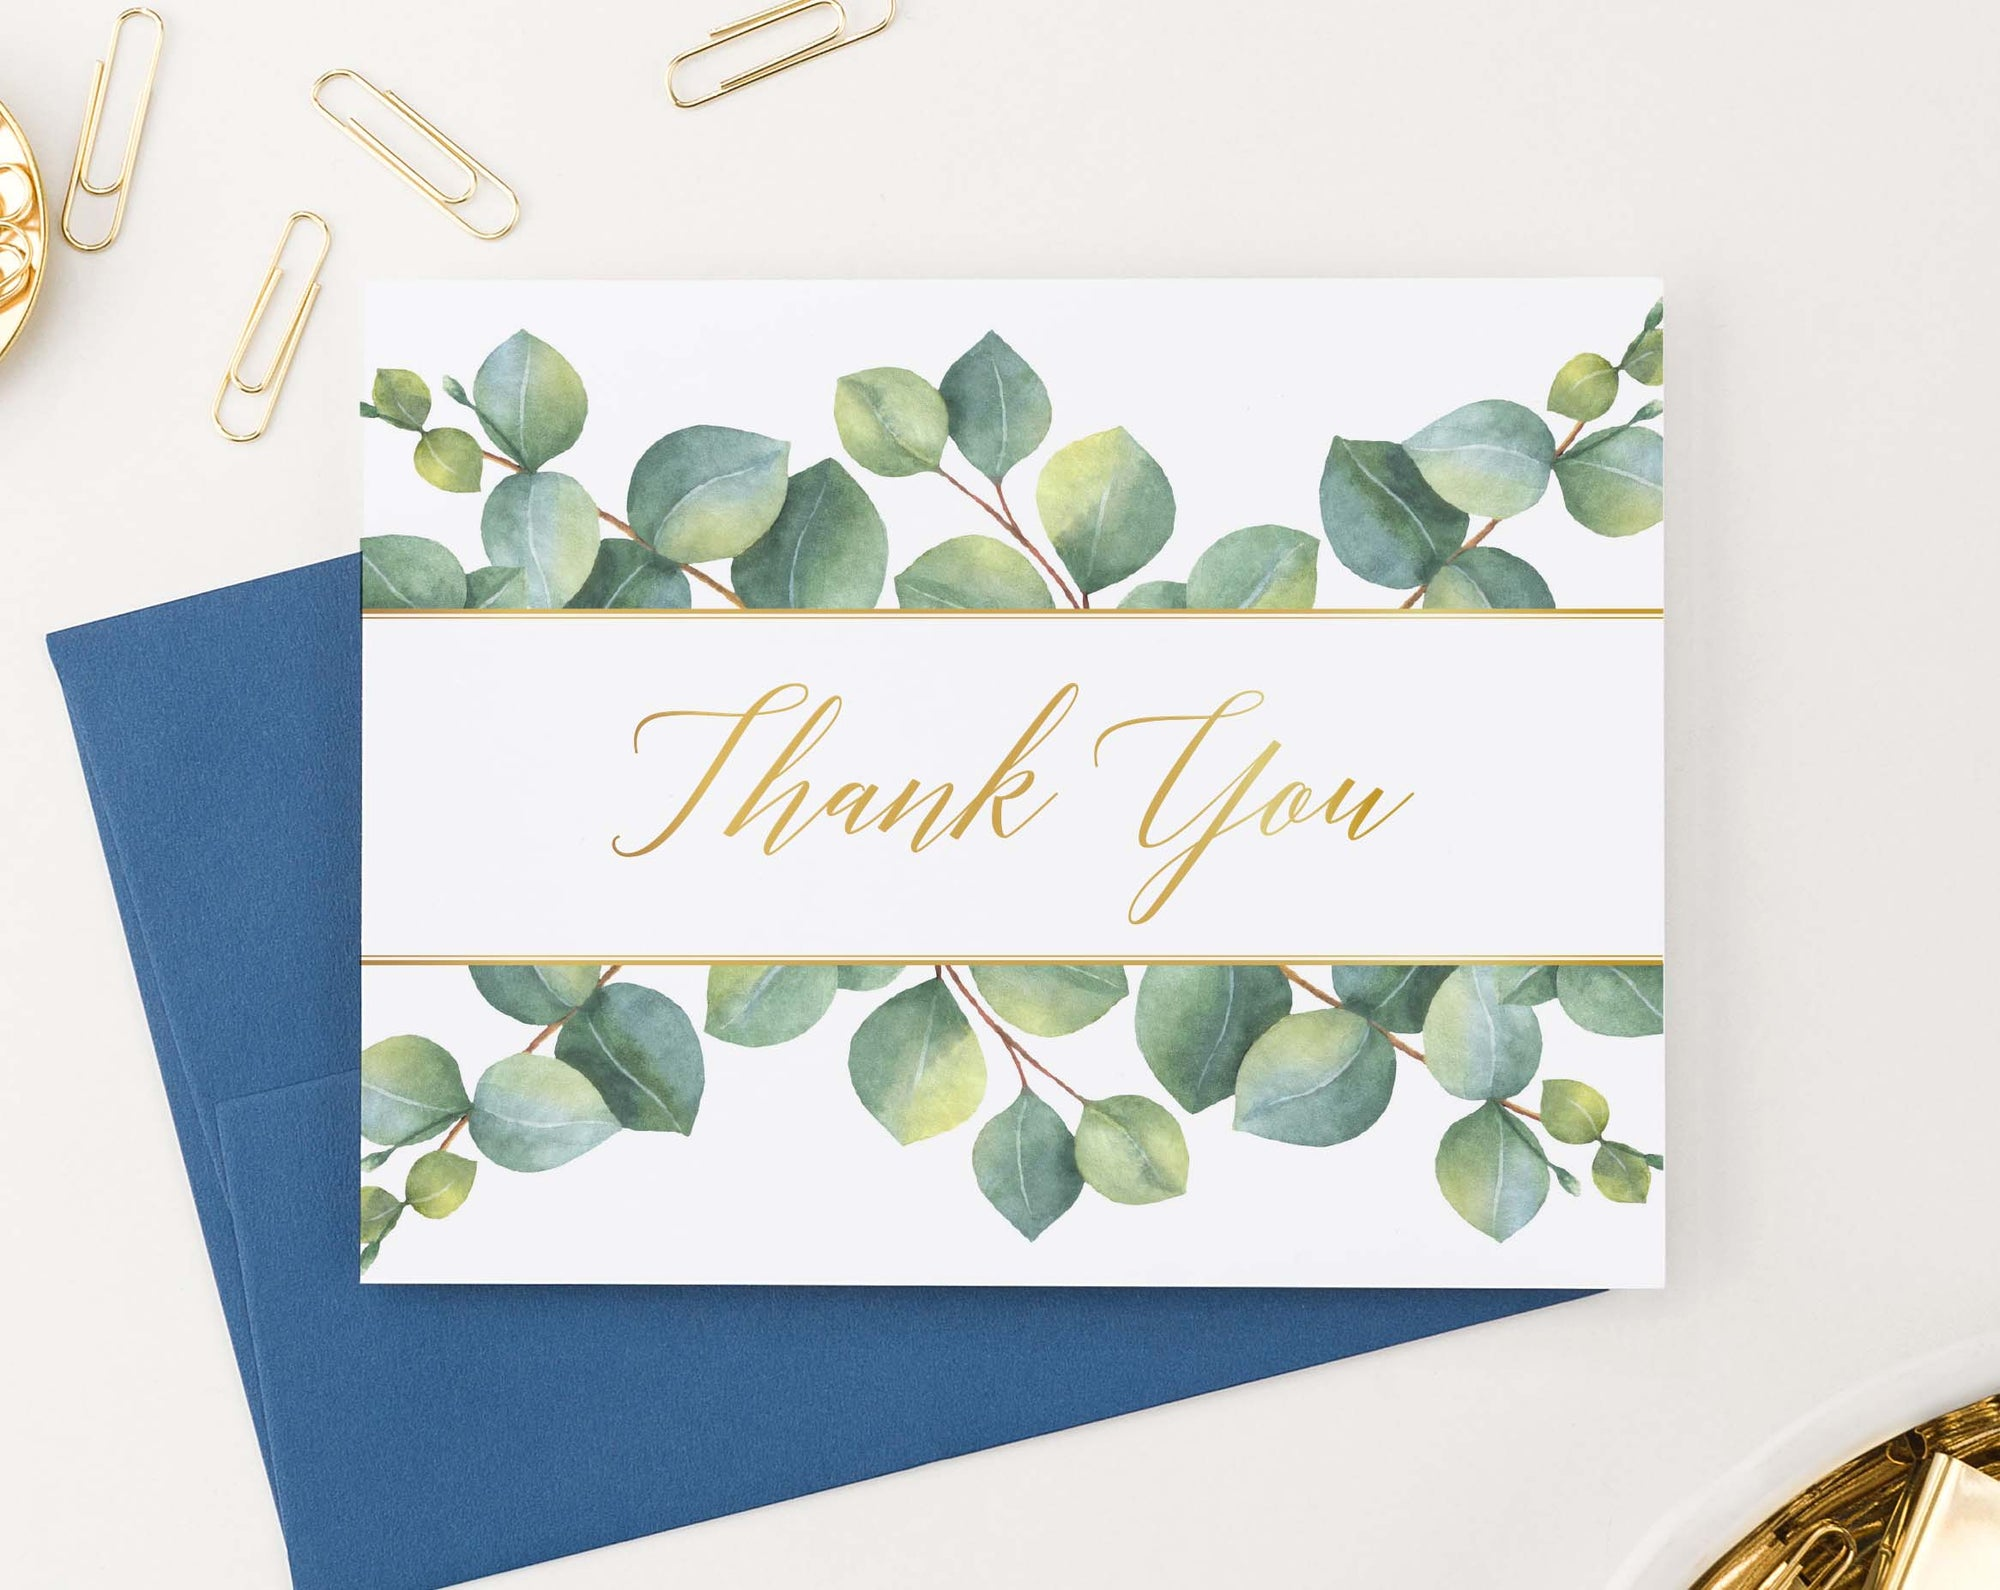 TY035 eucalyptus thank you notes folded greenery gold women